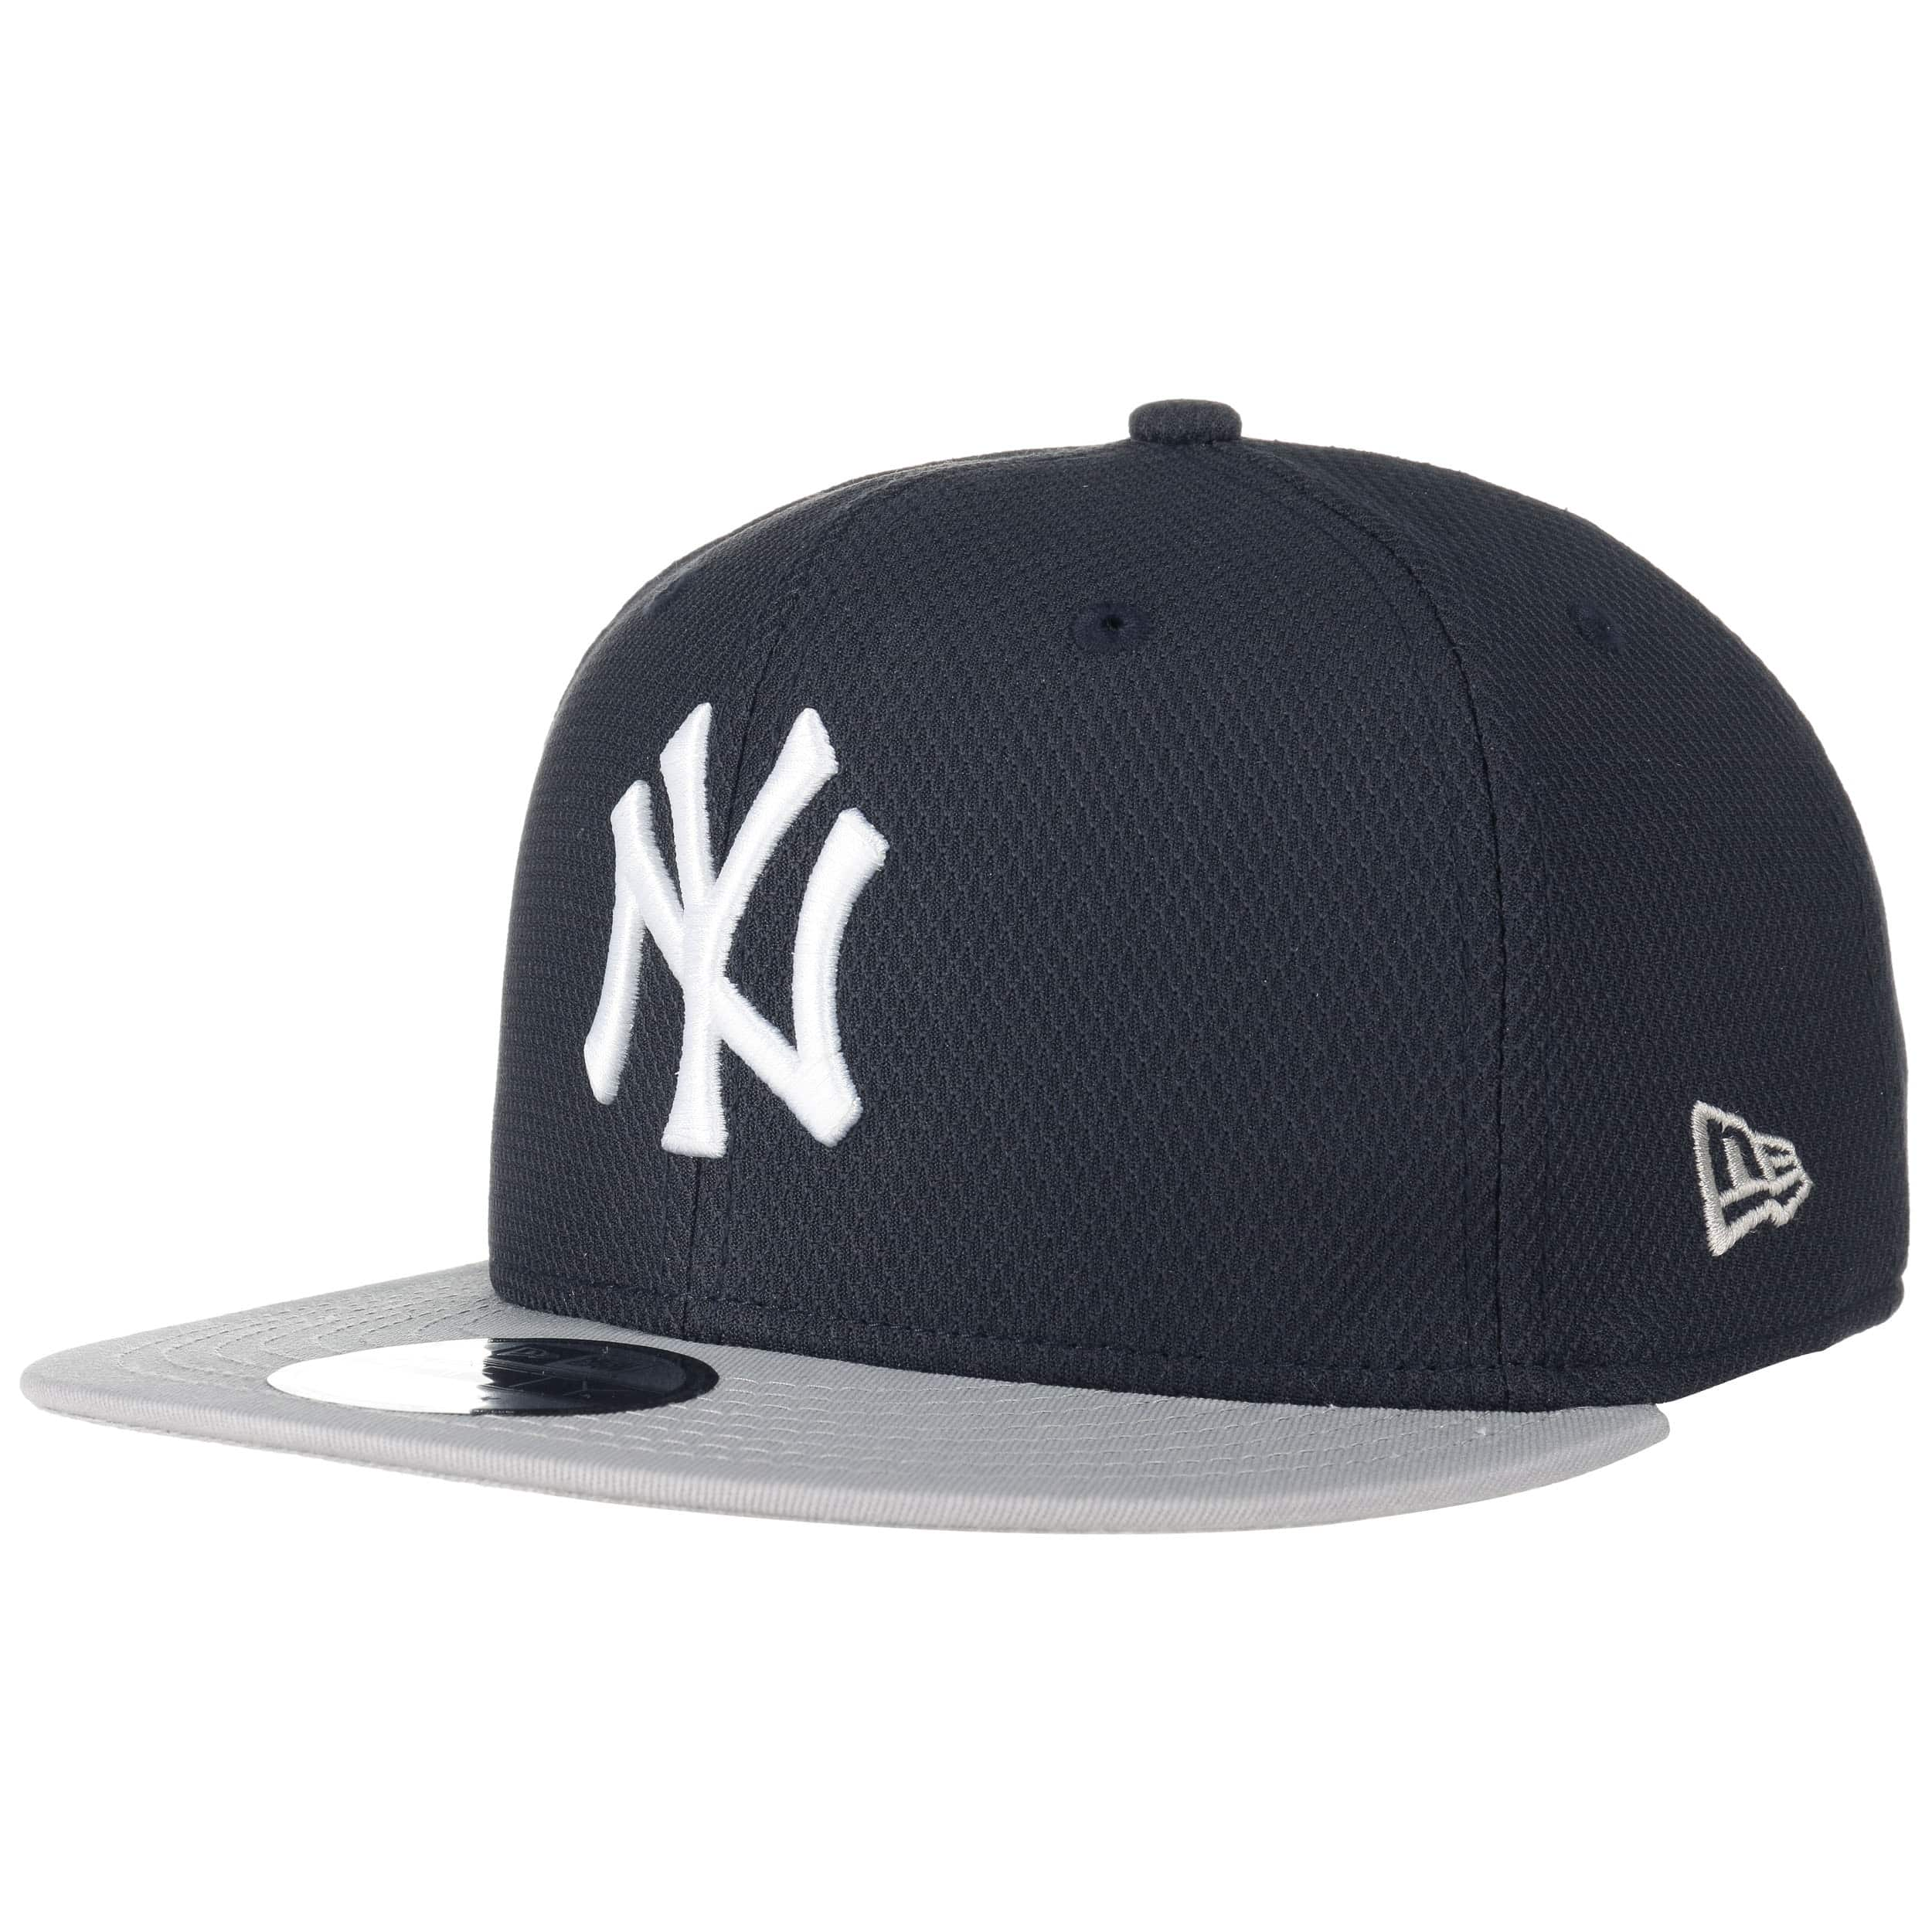 reputable site cc9c3 ded74 ... norway 9fifty ny yankees diamond cap by new era navy 6 fff7a 95347